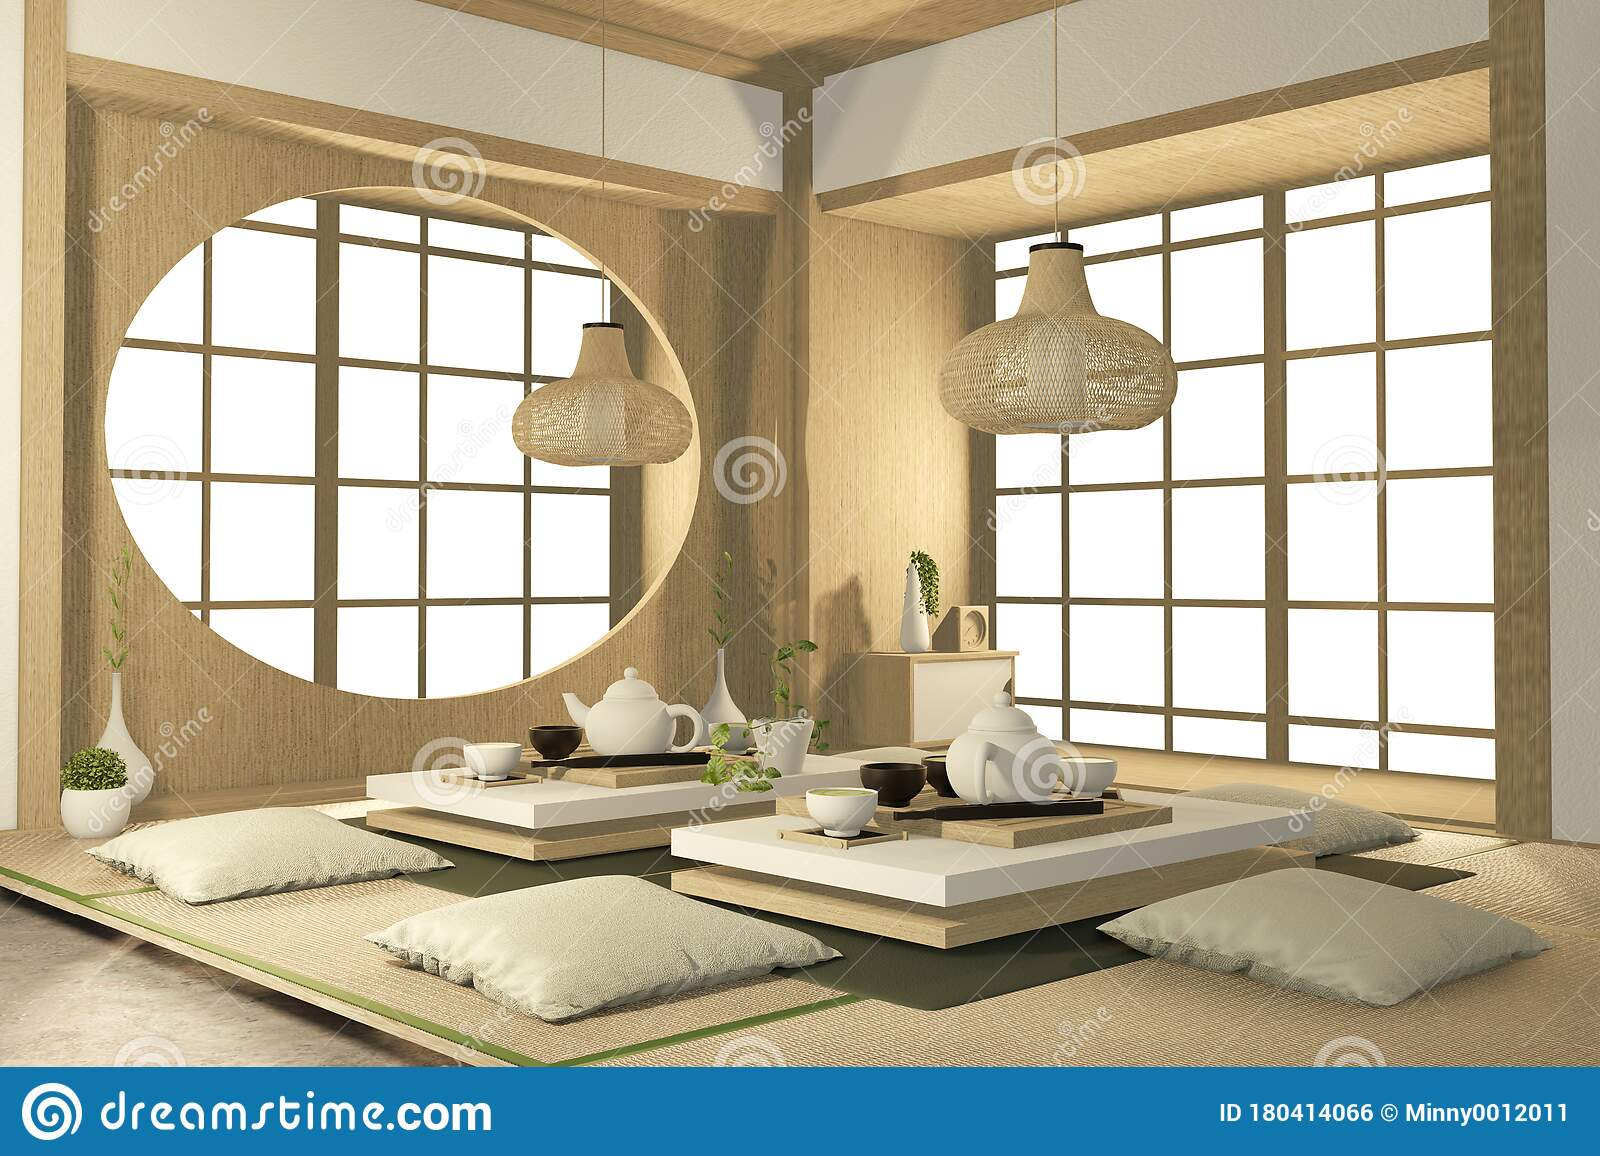 Tropical Interior Design With Sofa For Living Room Japanese Style 3d Rendering Stock Illustration Illustration Of Apartment Beautiful 180414066